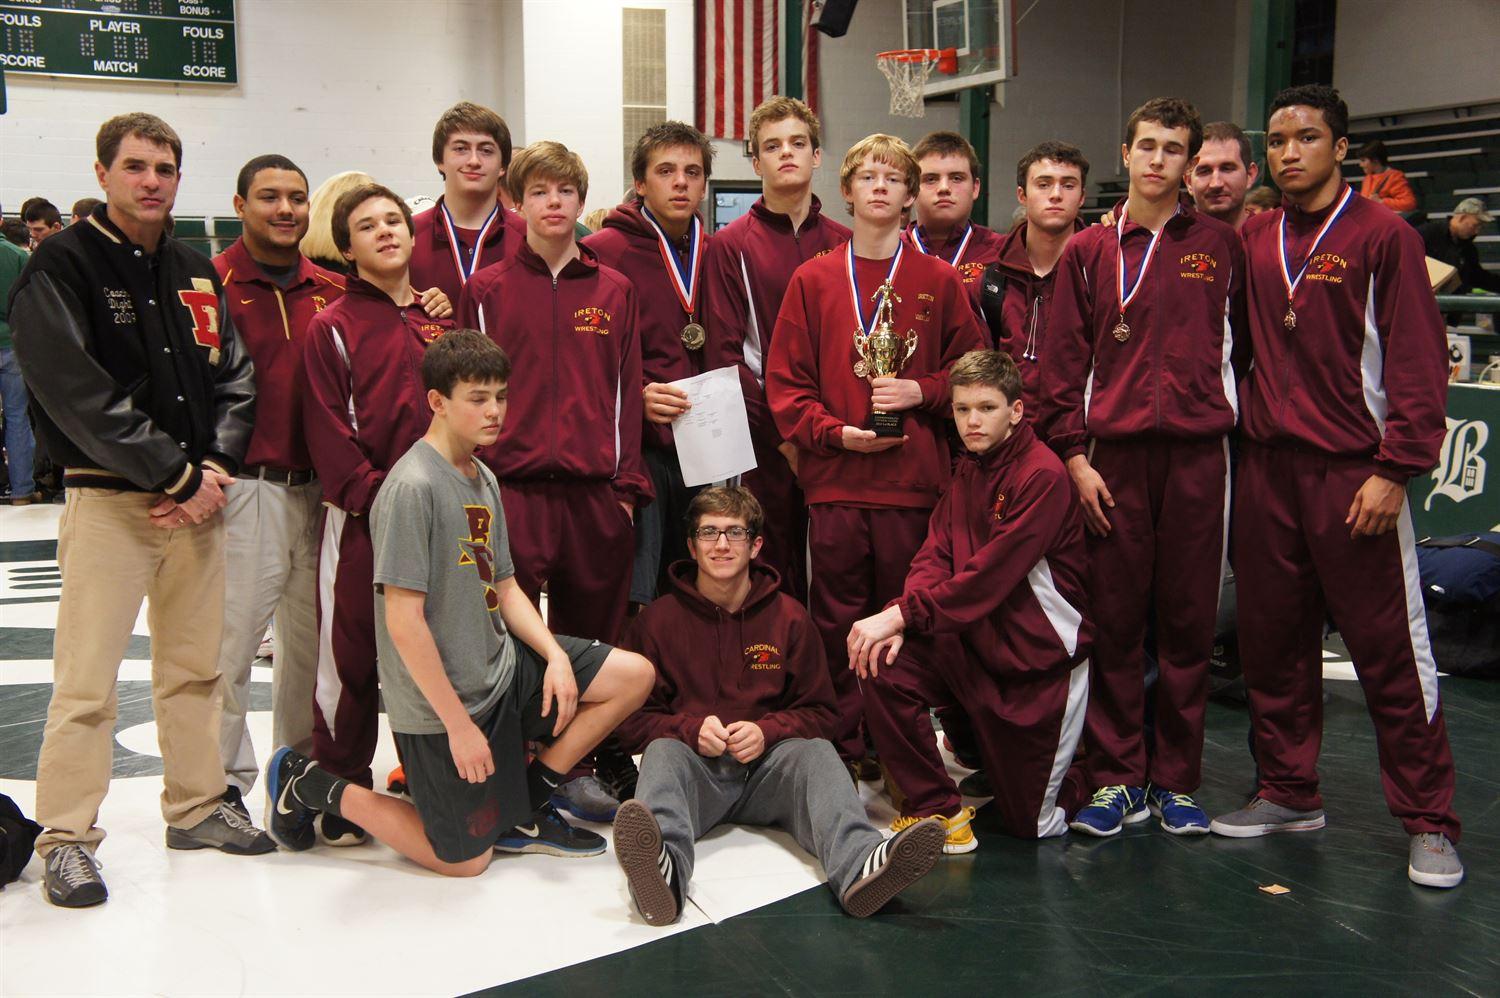 Bishop Ireton High School - Boys' Varsity Wrestling